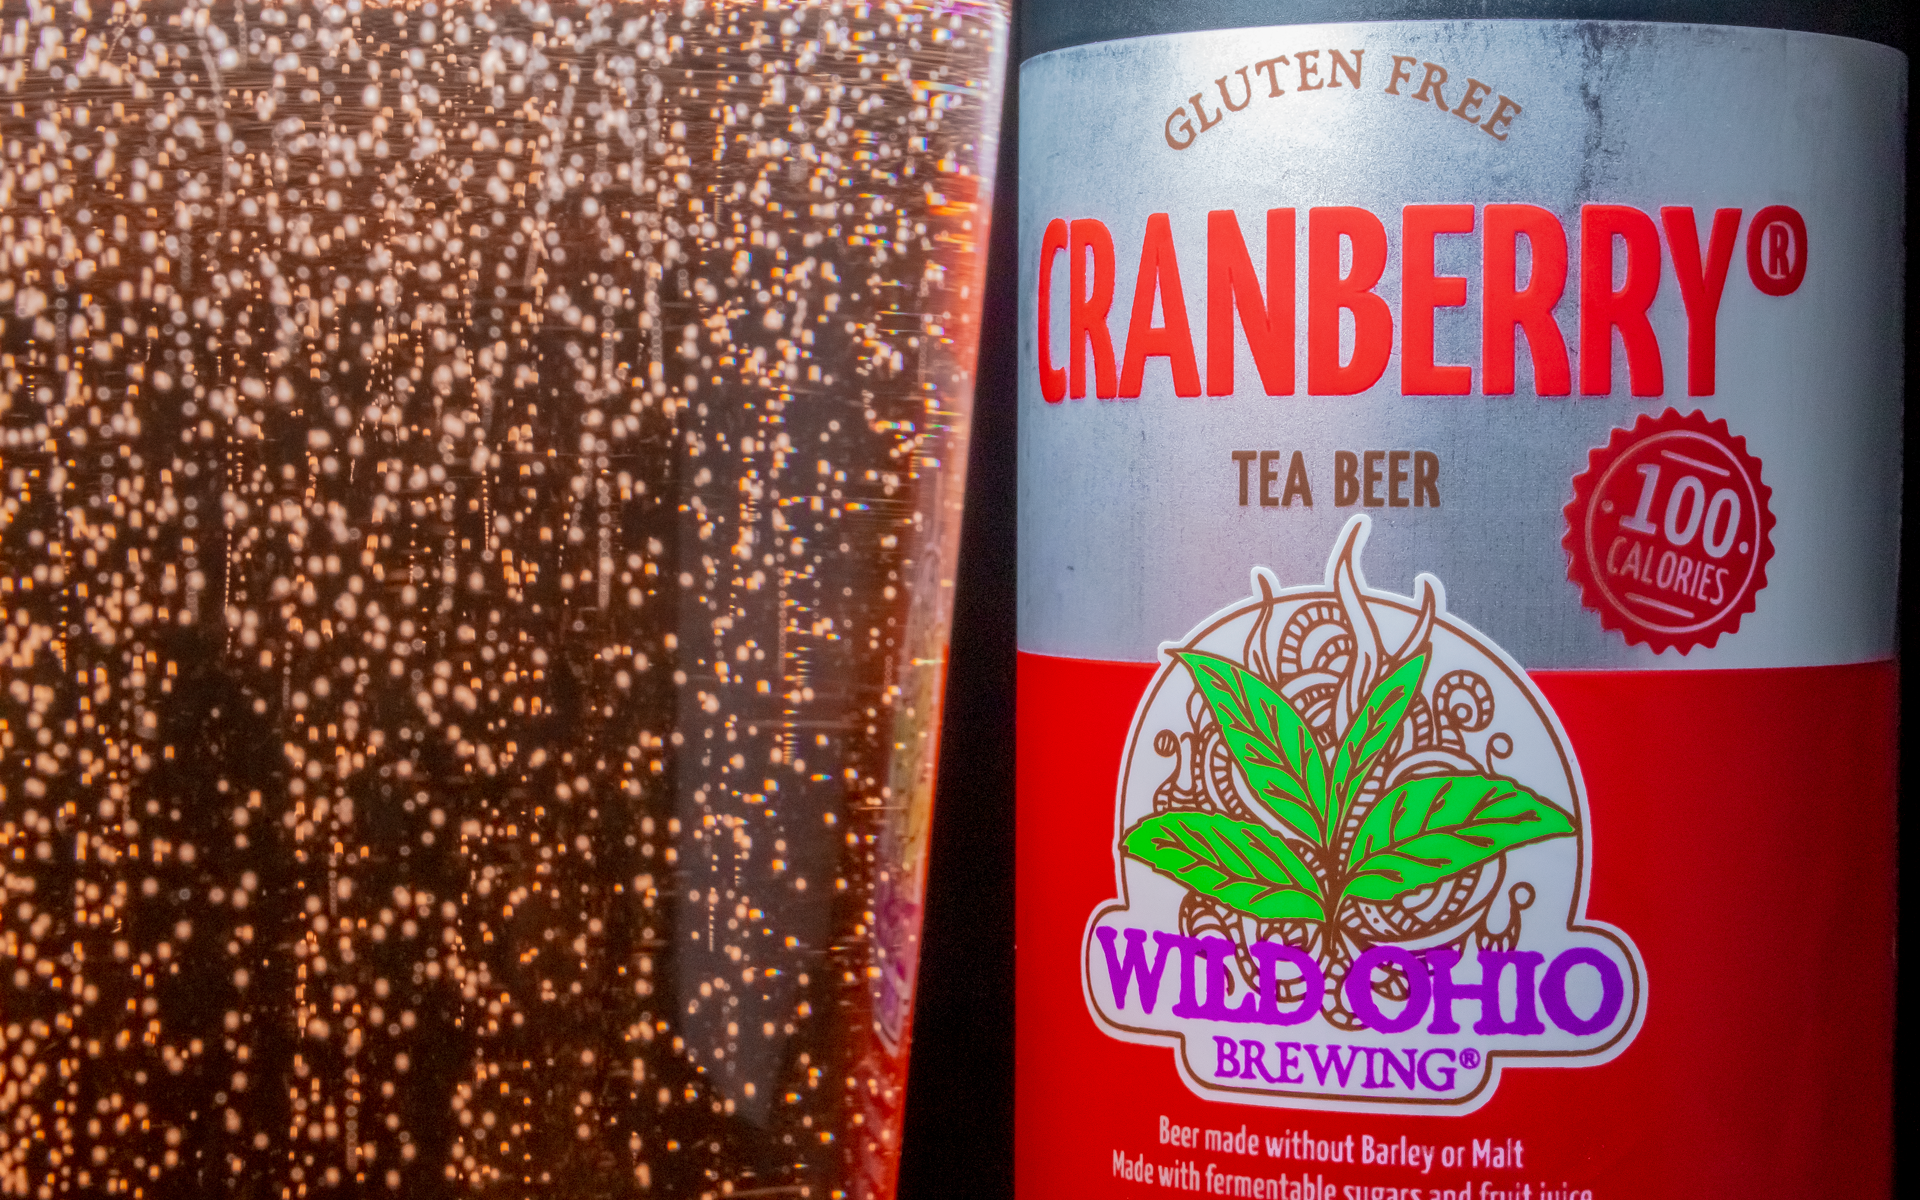 Wild Ohio Cranberry Tea Beer